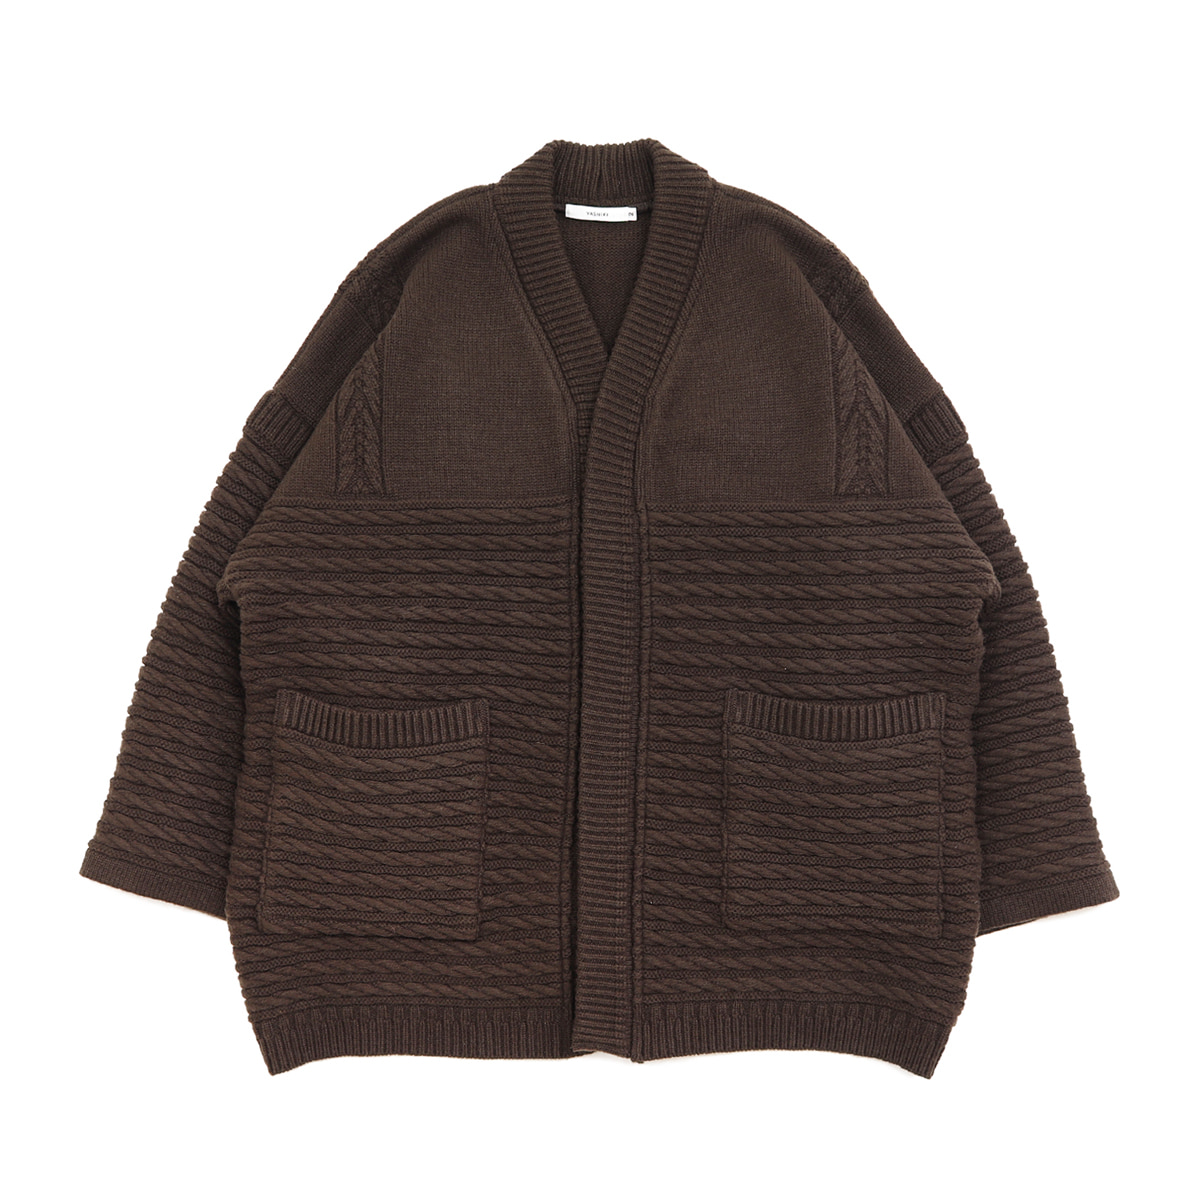 [YASHIKI] MINORI HANTEN KNIT 'BROWN'